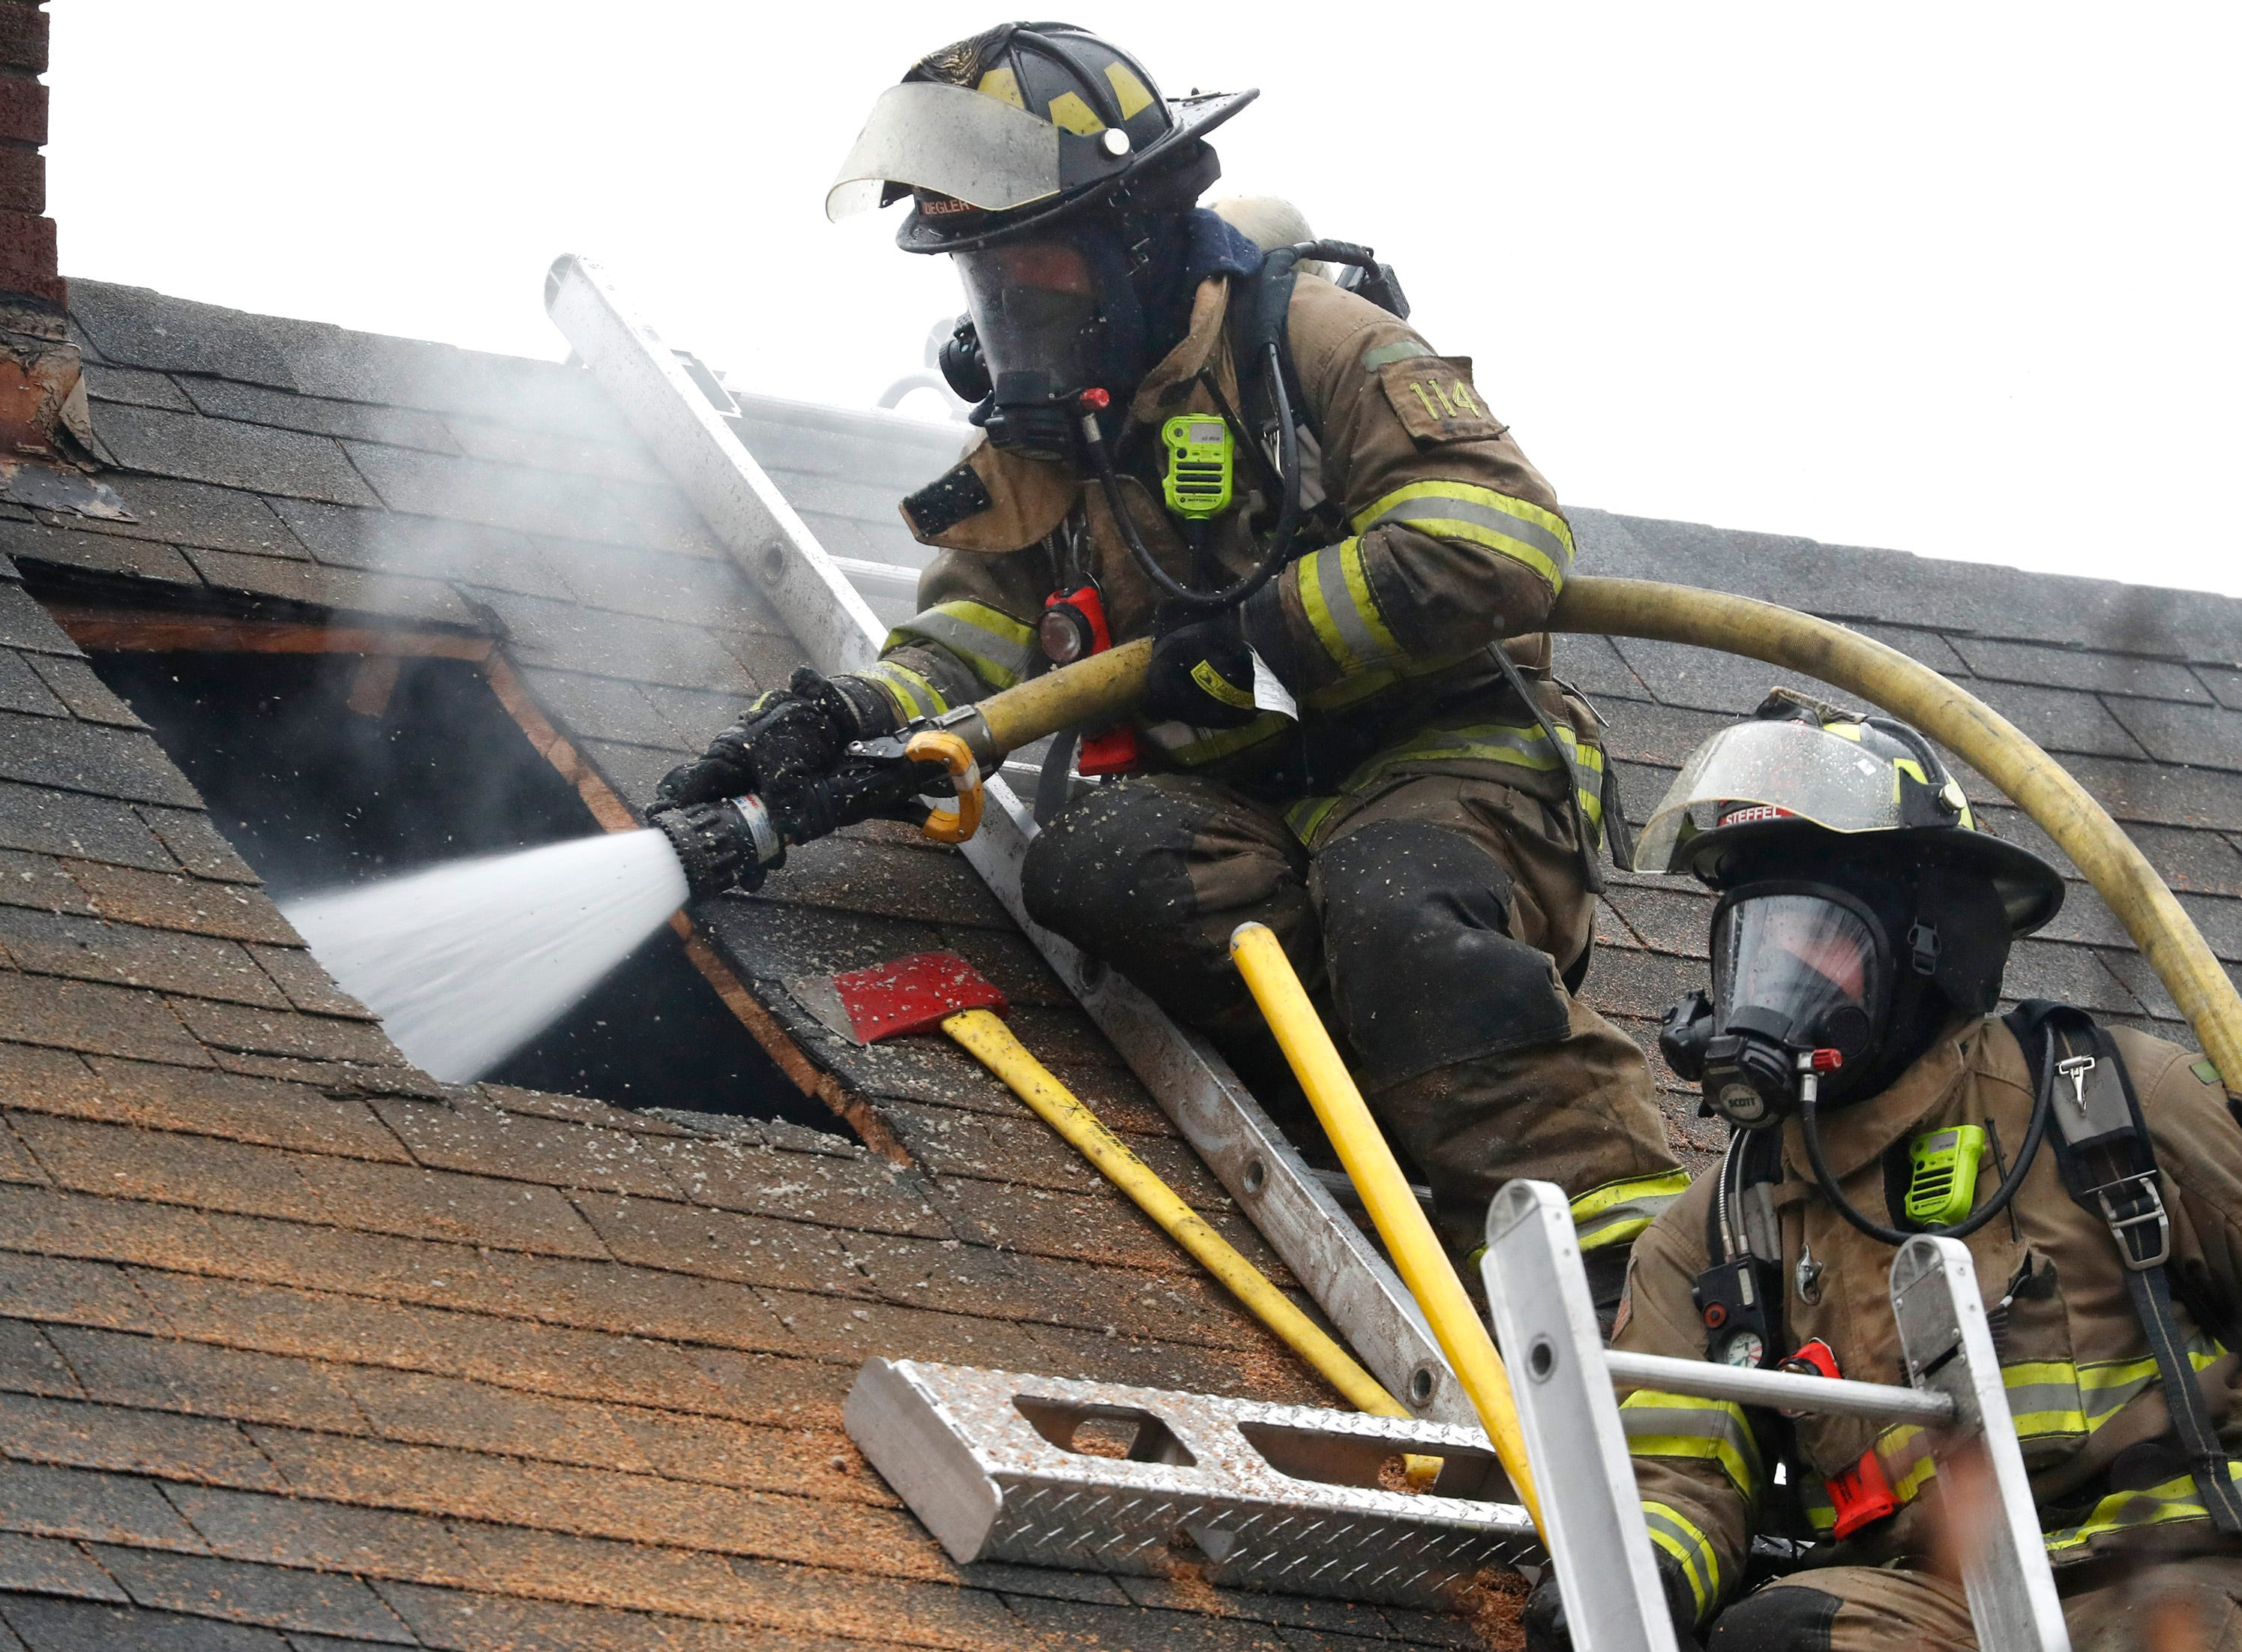 Kaukuana firefighters spray water through a hole they cut in the roof of a building on West 10th Street Thursday, Dec. 27, 2018, Kaukauna, Wis.Danny Damiani/USA TODAY NETWORK-Wisconsin